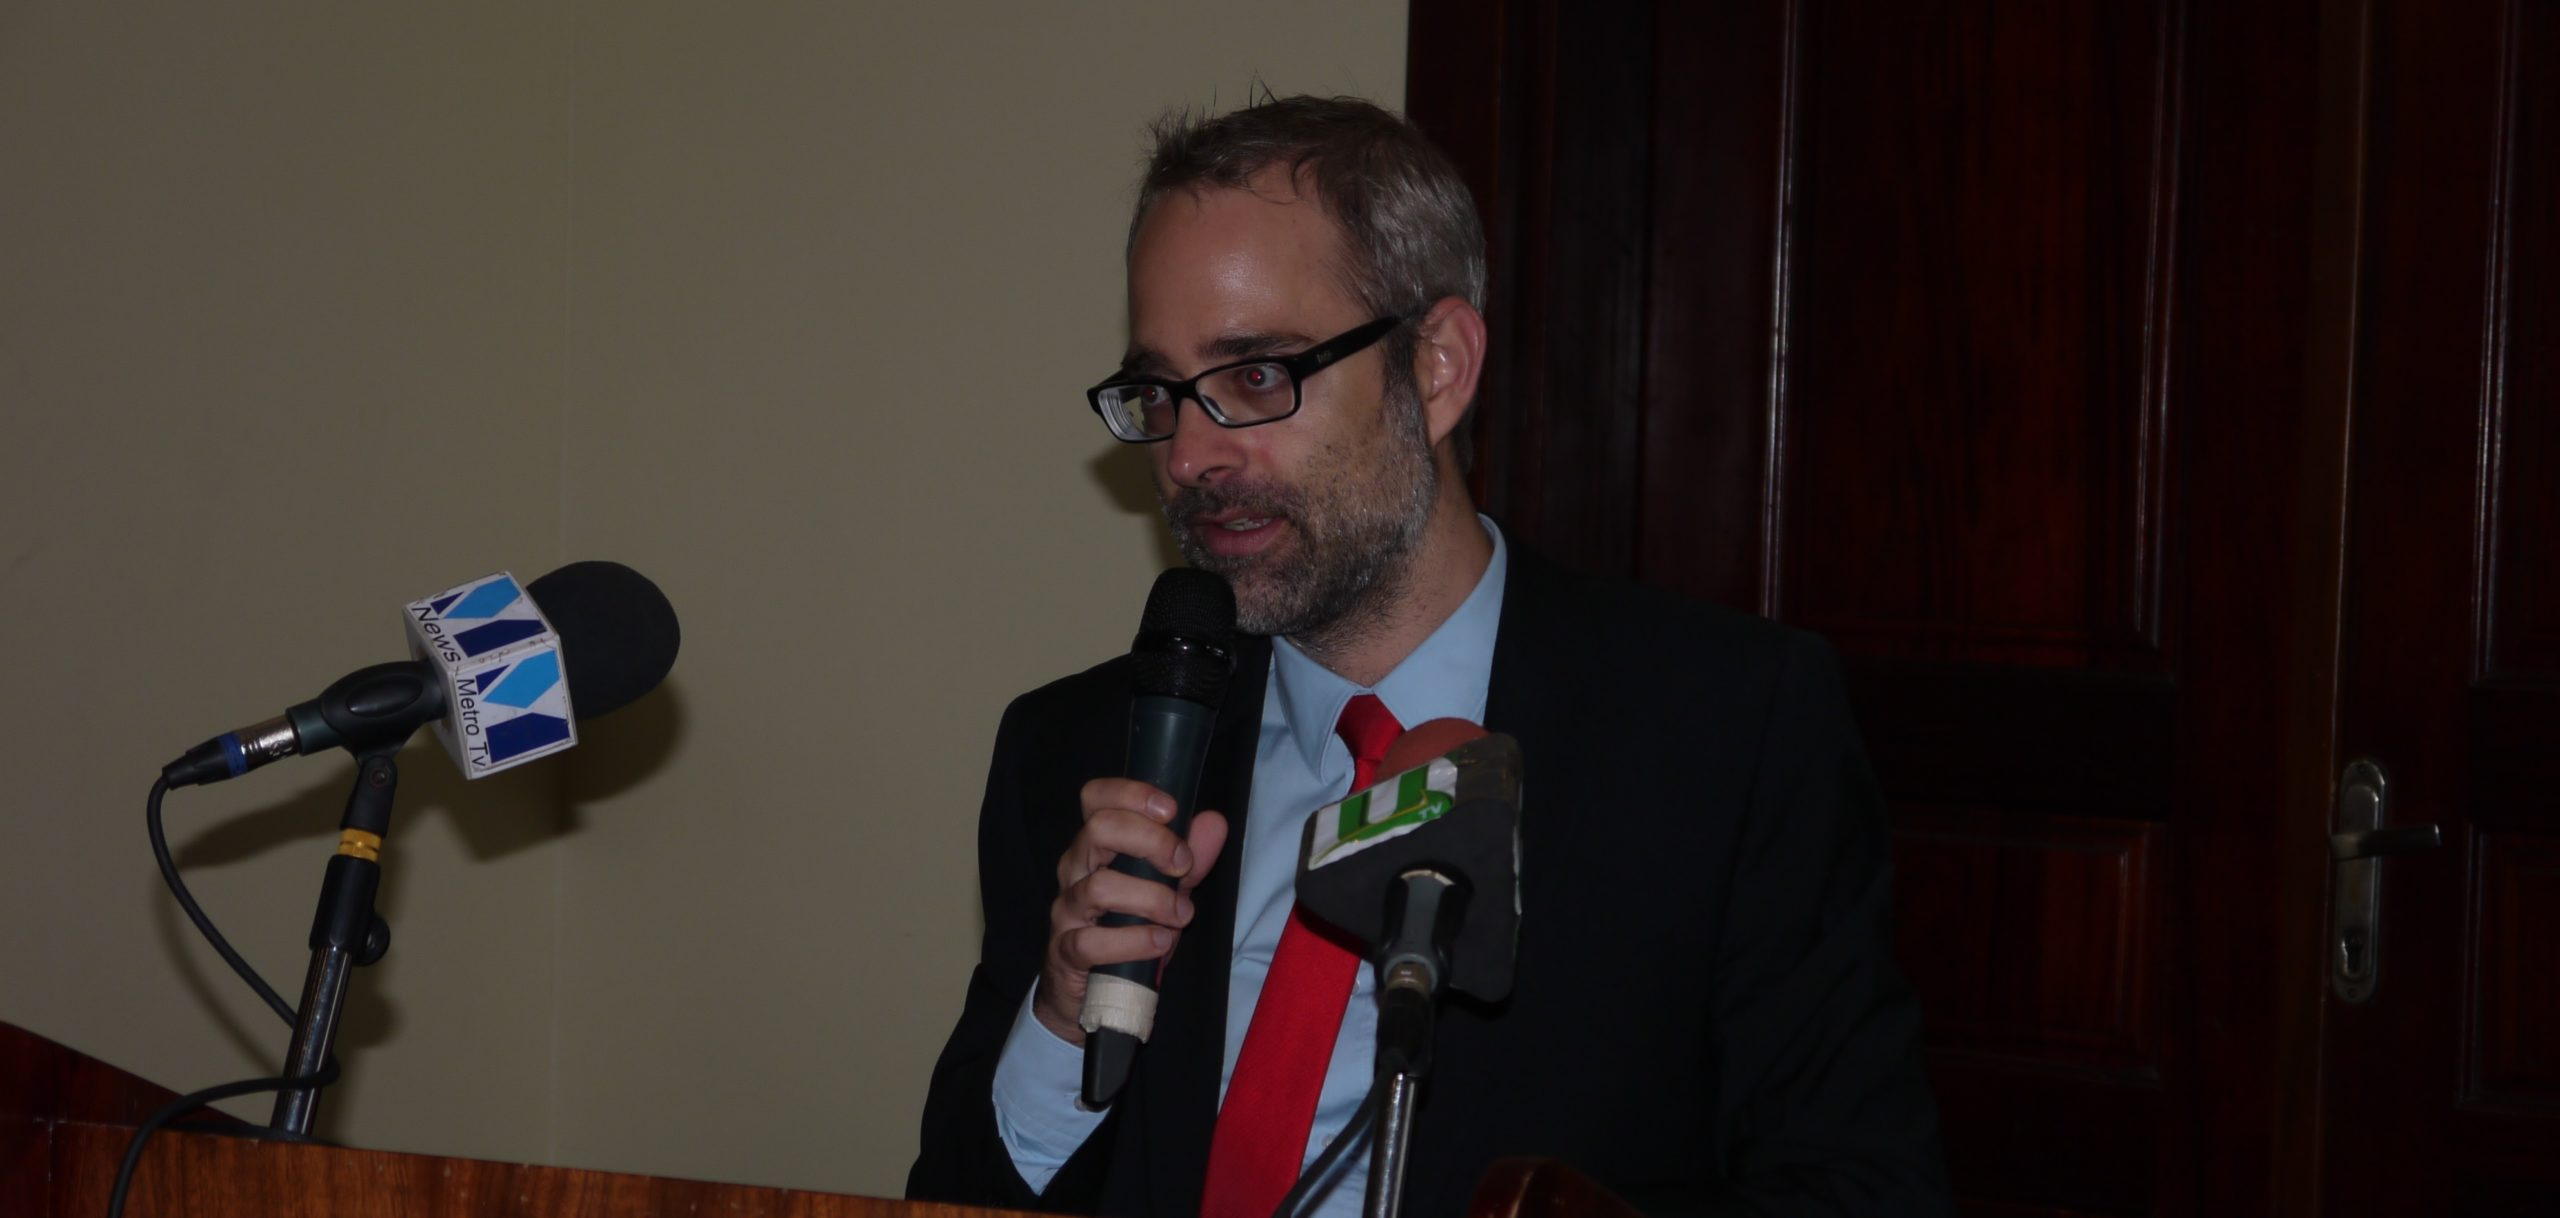 Mr. Matthias Feldmann, Head of Cooperation at the Swiss Embassy in Accra, speaking on behalf of the Ambassador, highlighted that Switzerland itself experienced the power of addressing environmental, social and economic issues by working through schools, u